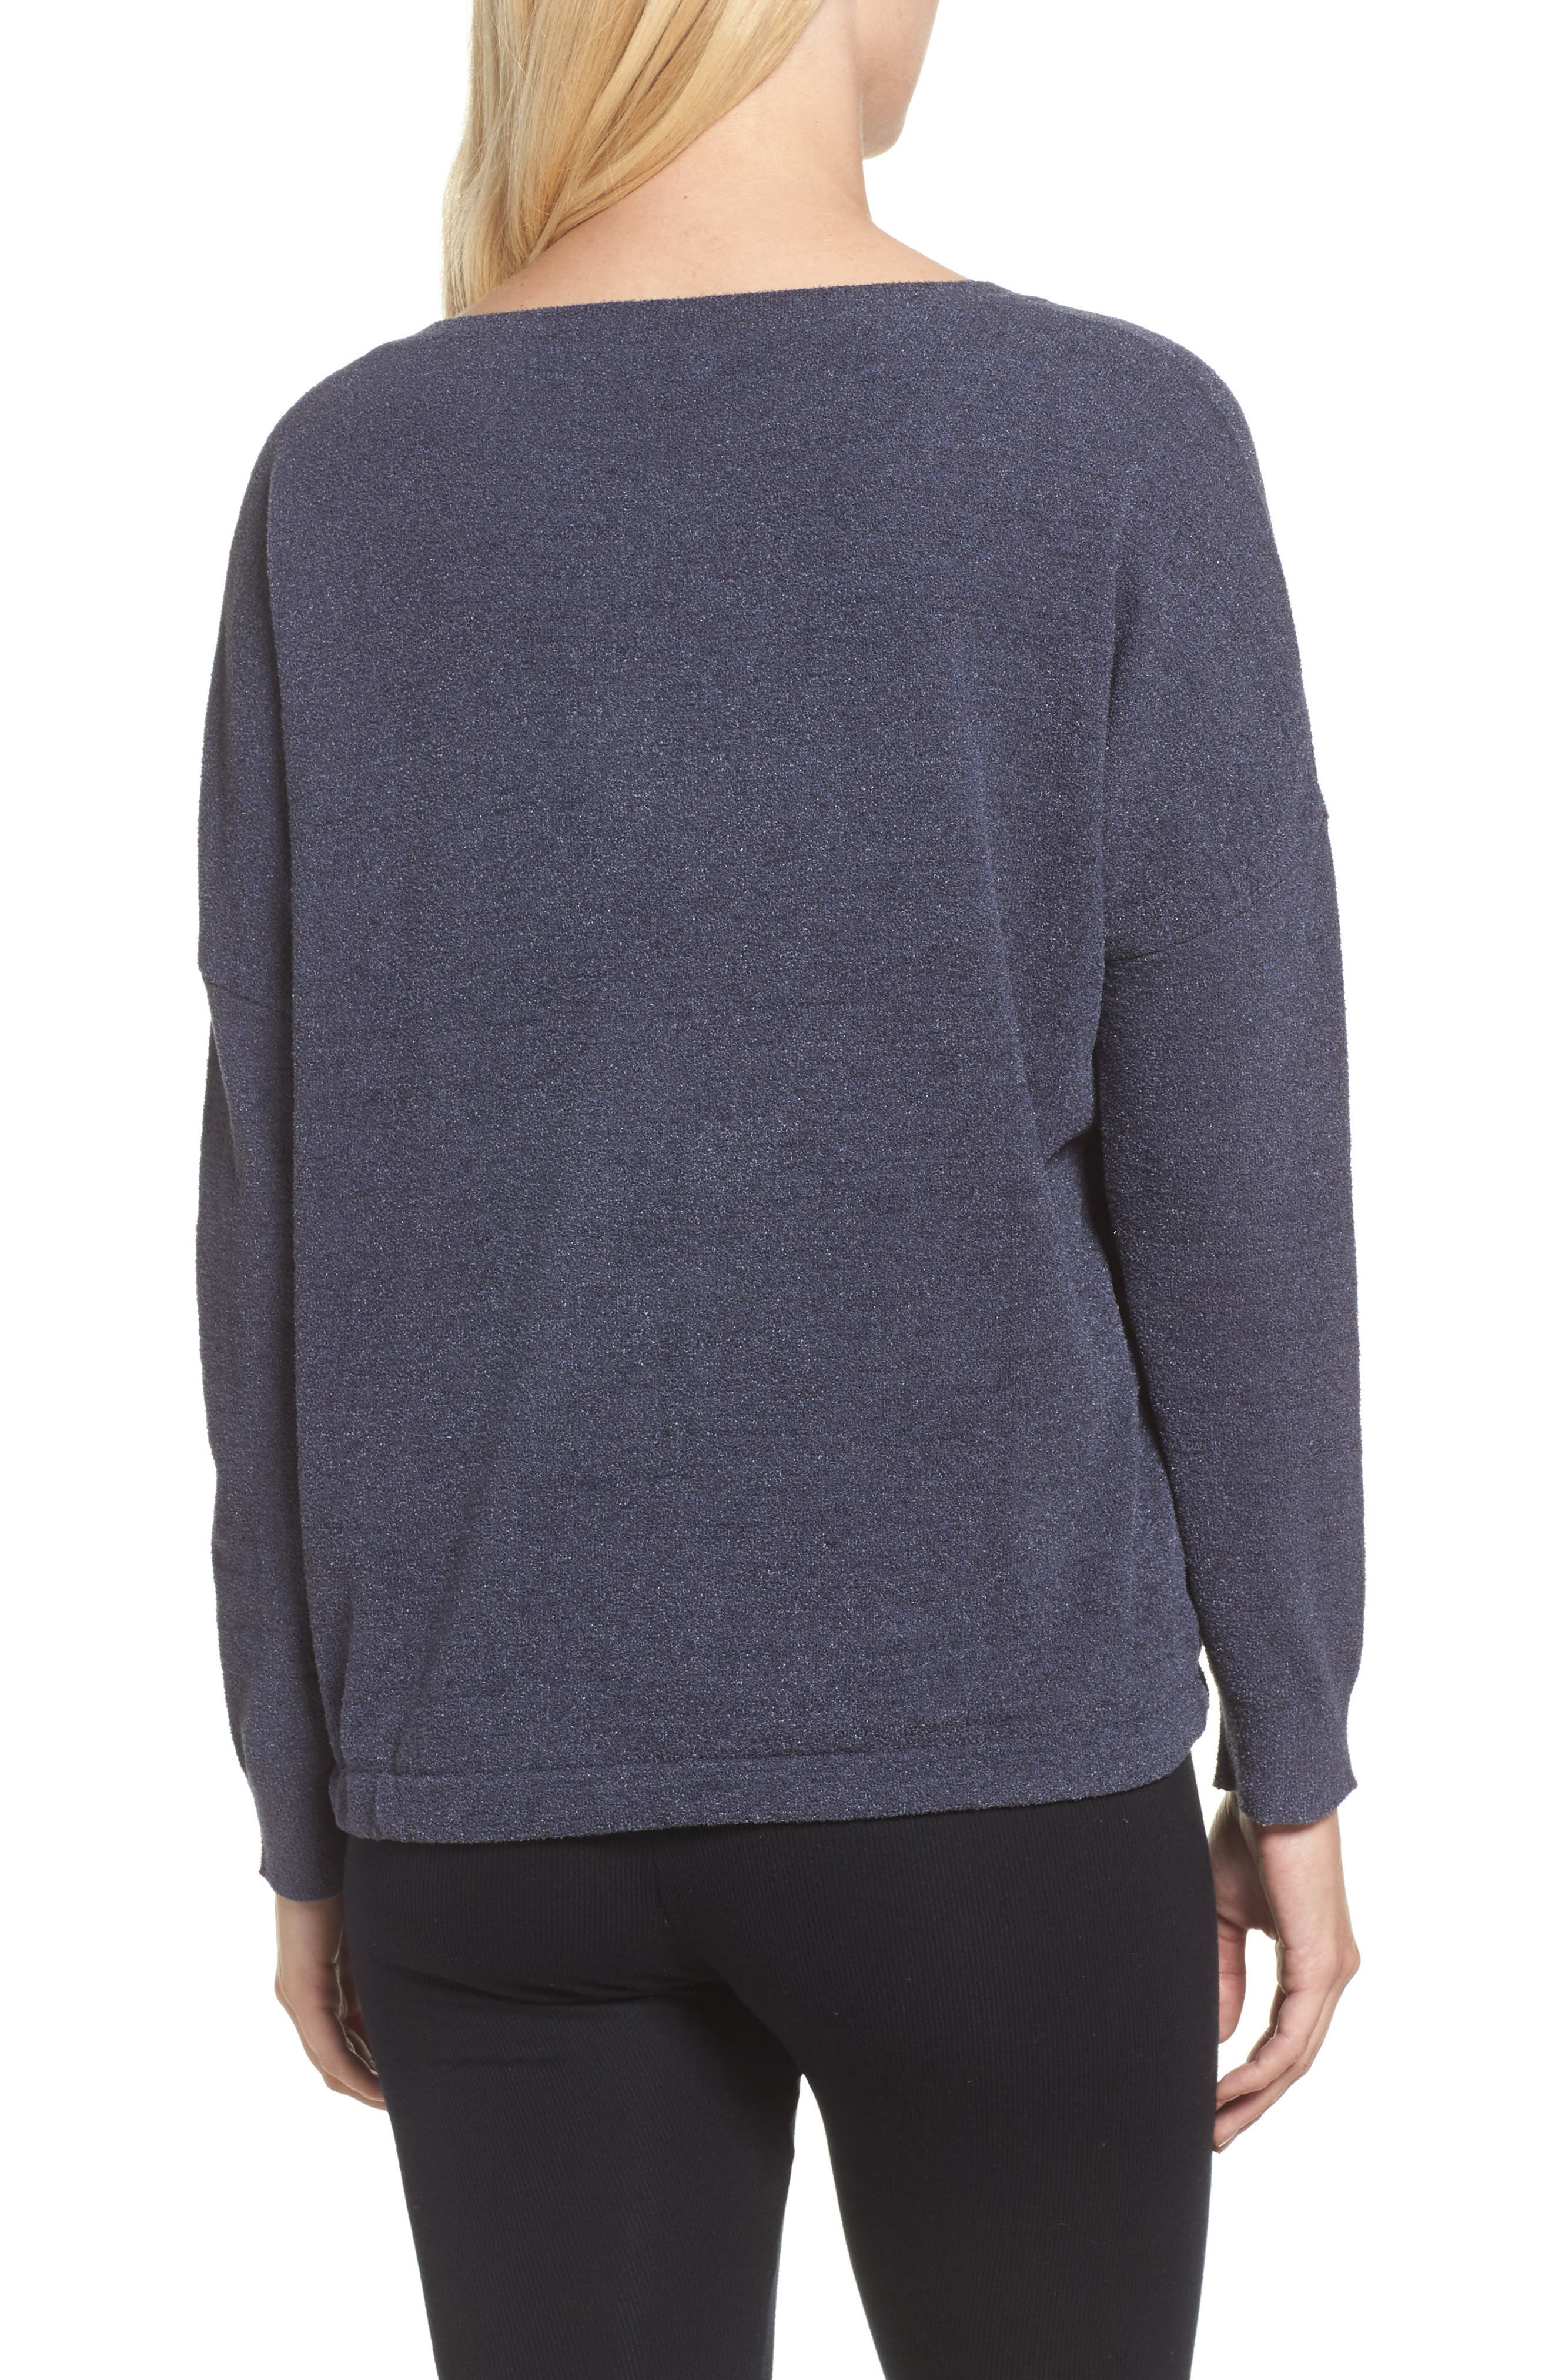 Cozychic Ultra Lite<sup>®</sup> Lounge Pullover,                             Alternate thumbnail 2, color,                             Pacific Blue